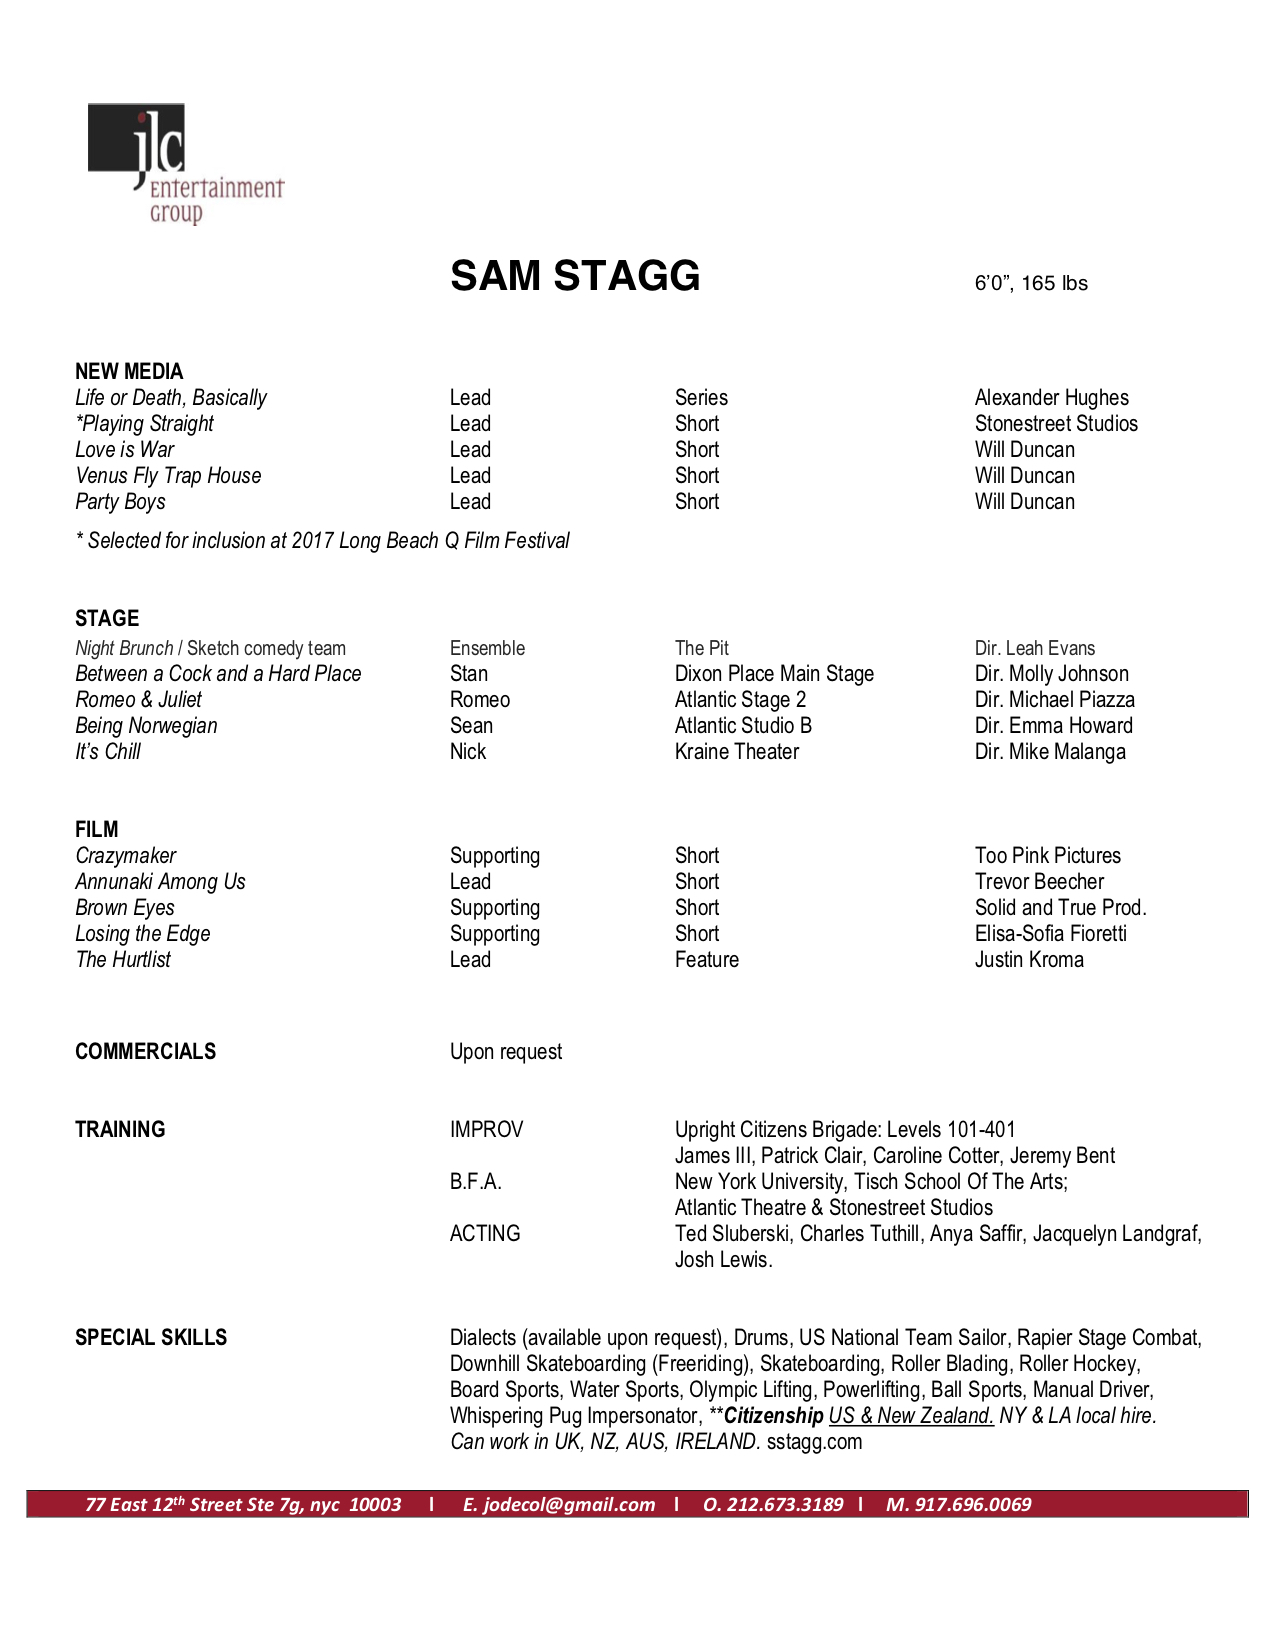 Sam Stagg Resume.jpg